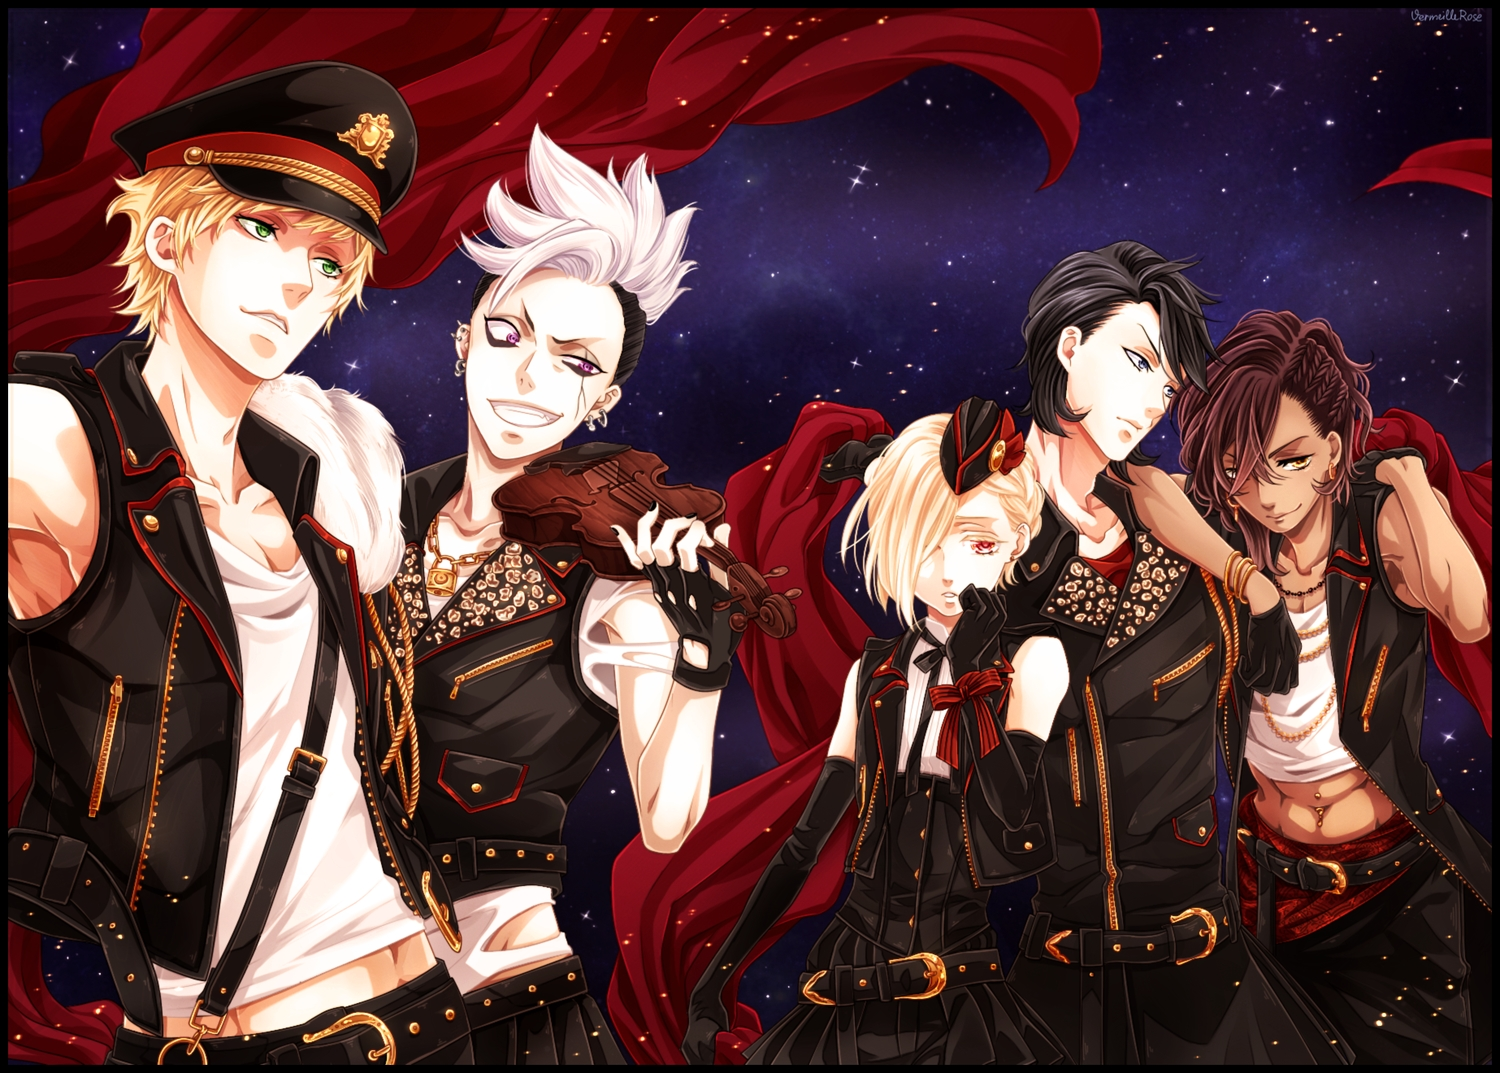 all_male blonde_hair brown_hair cheslock_(kuroshitsuji) clayton_(kuroshitsuji) dark_skin edward_midford gloves green_eyes group hat instrument joanne_harcourt kuroshitsuji male orange_eyes purple_eyes red_eyes red_hair soma_asman_kadar vermeillerose violin white_hair